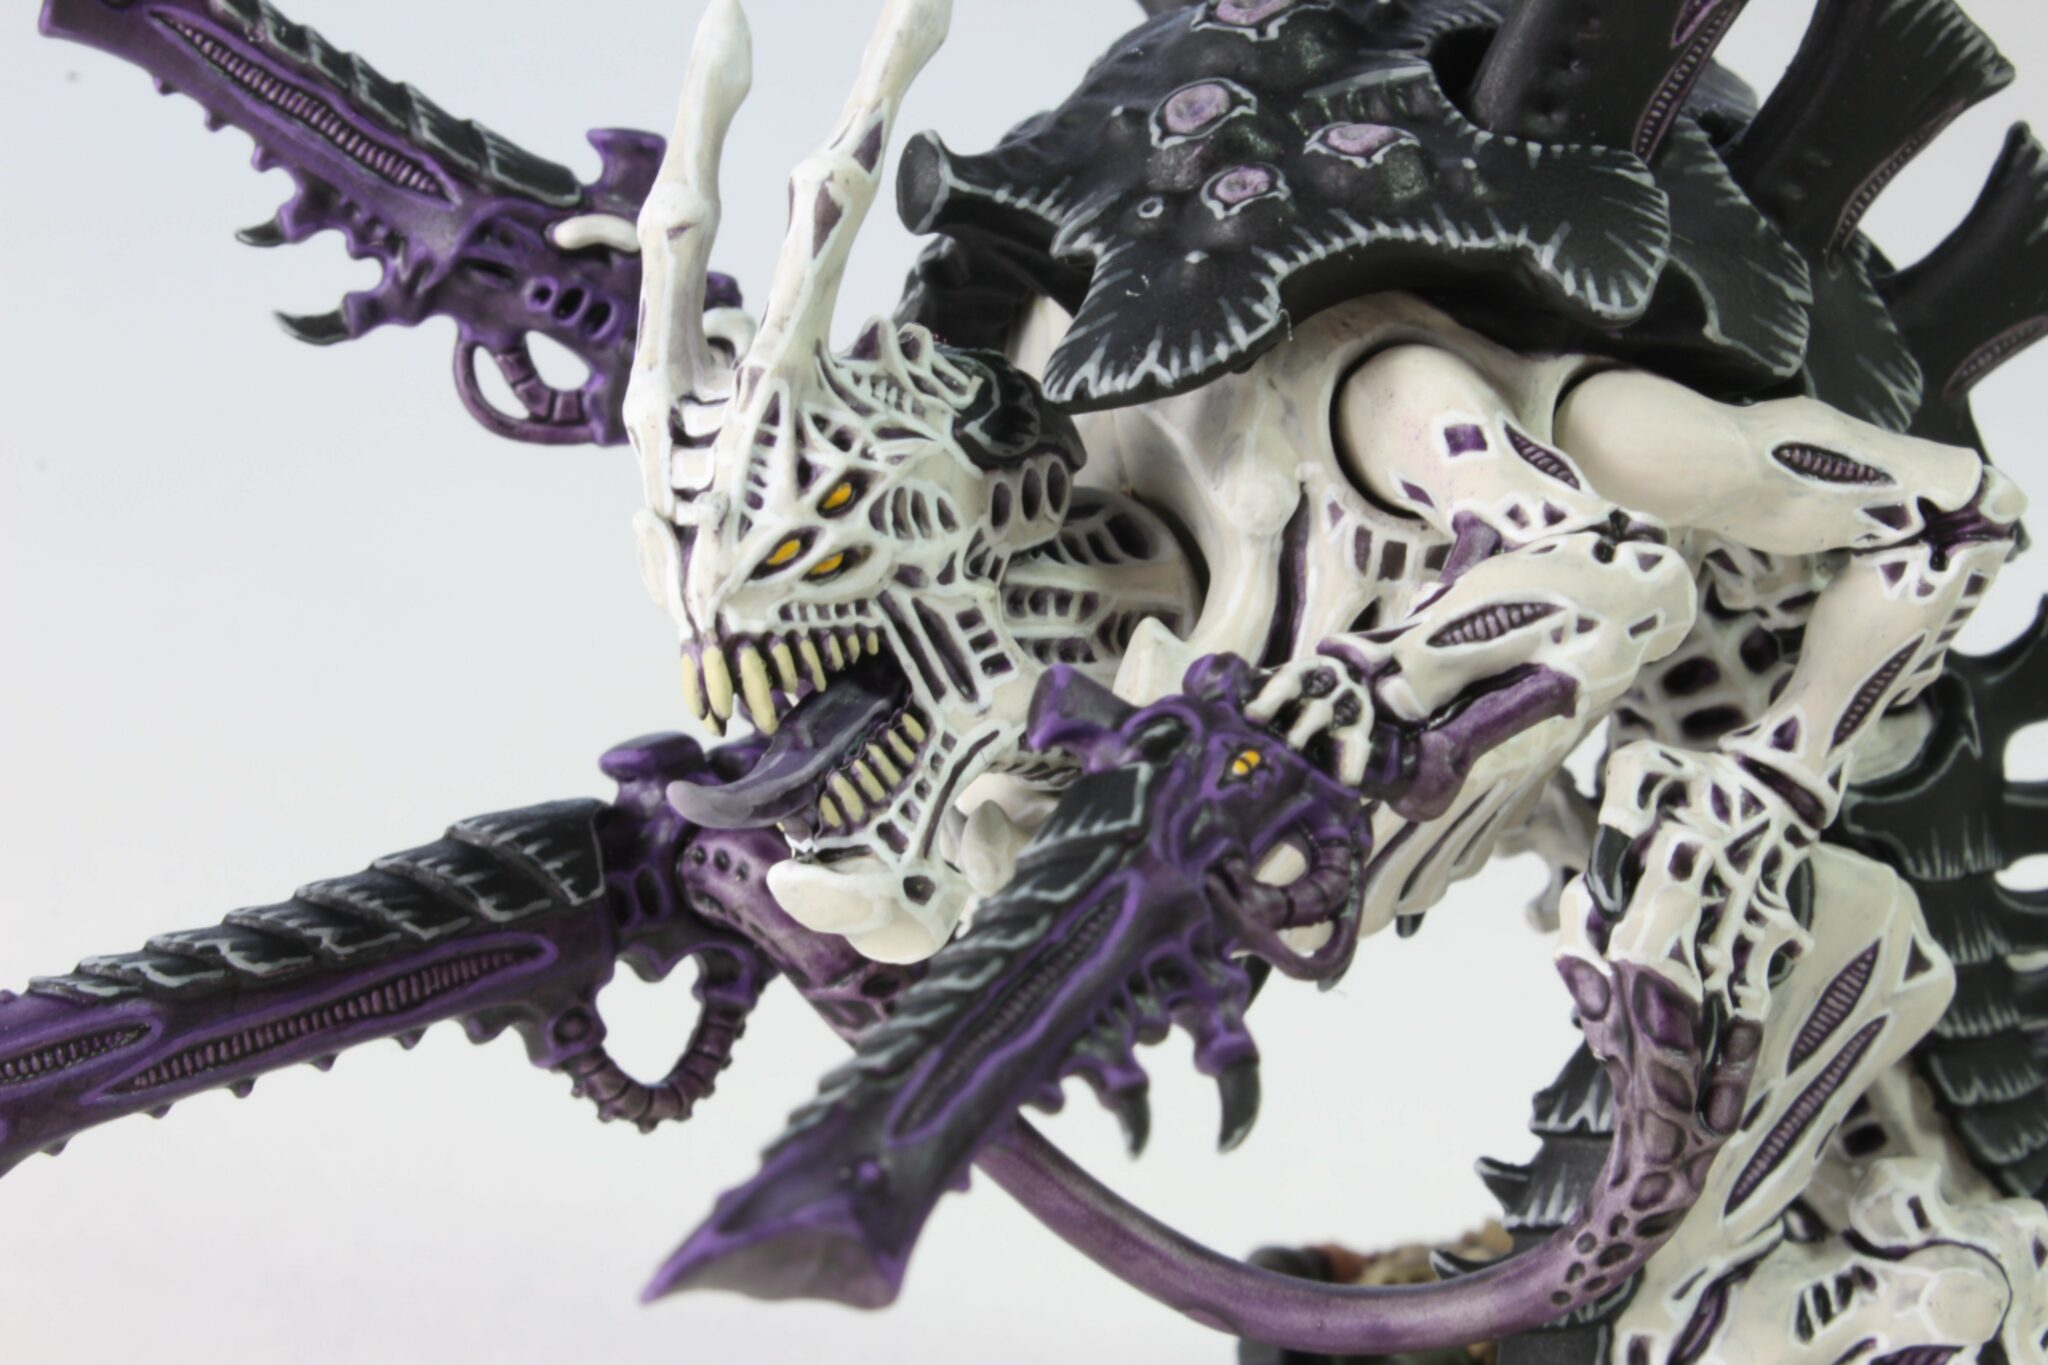 Tyranids - Carnifex - Venom Cannon - Face Left Side